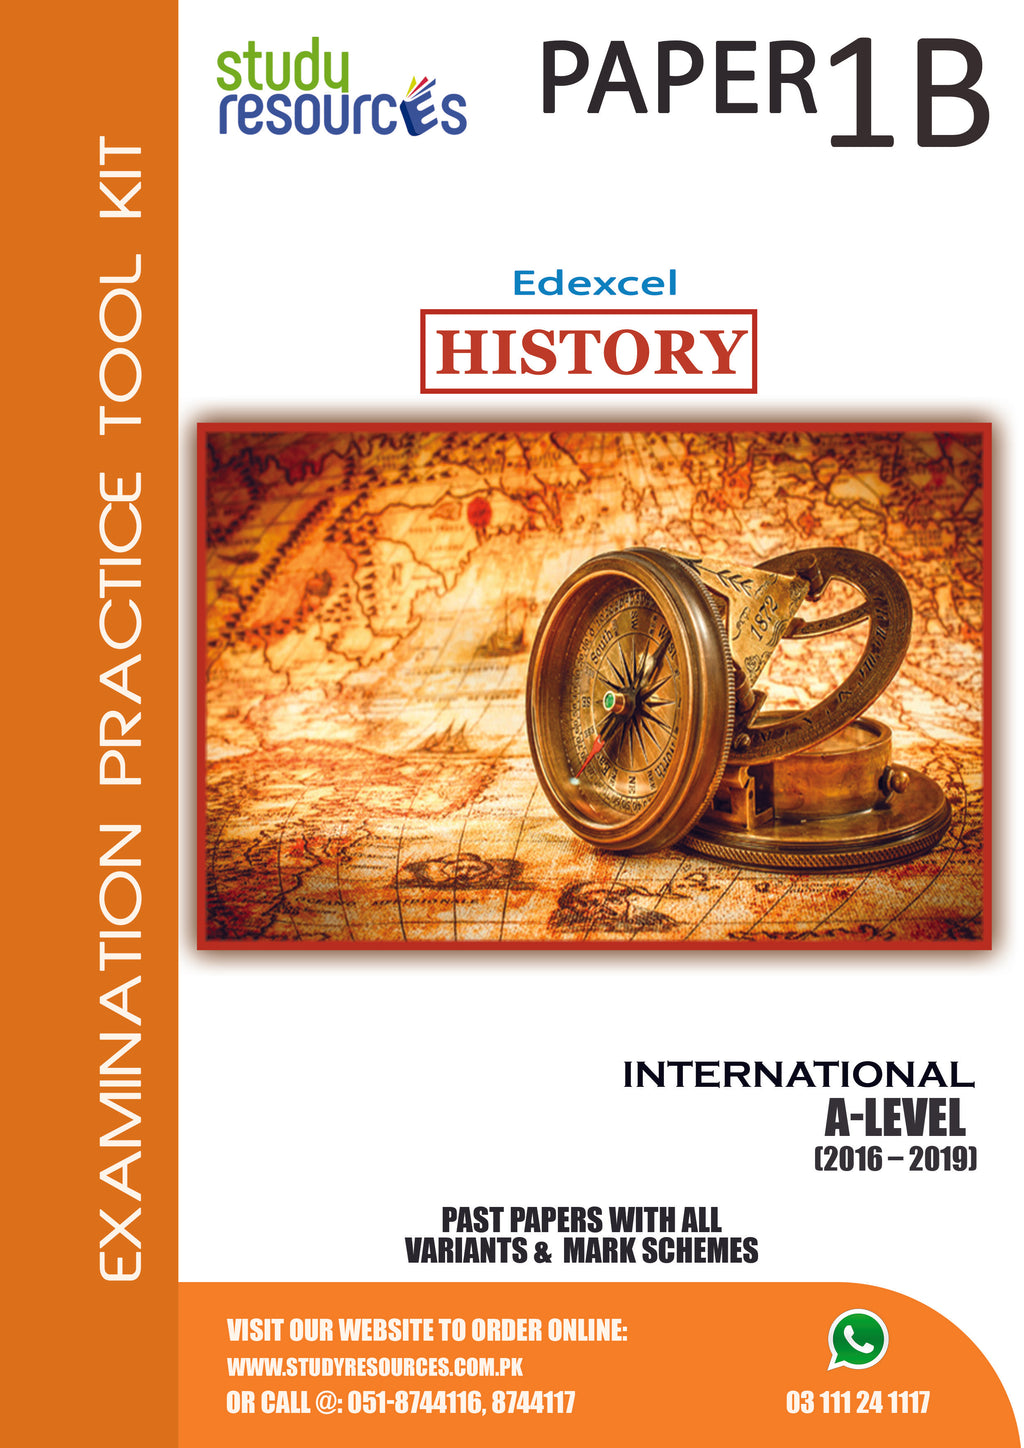 Edexcel A-Level History P-1B Past Papers (2016-2019)